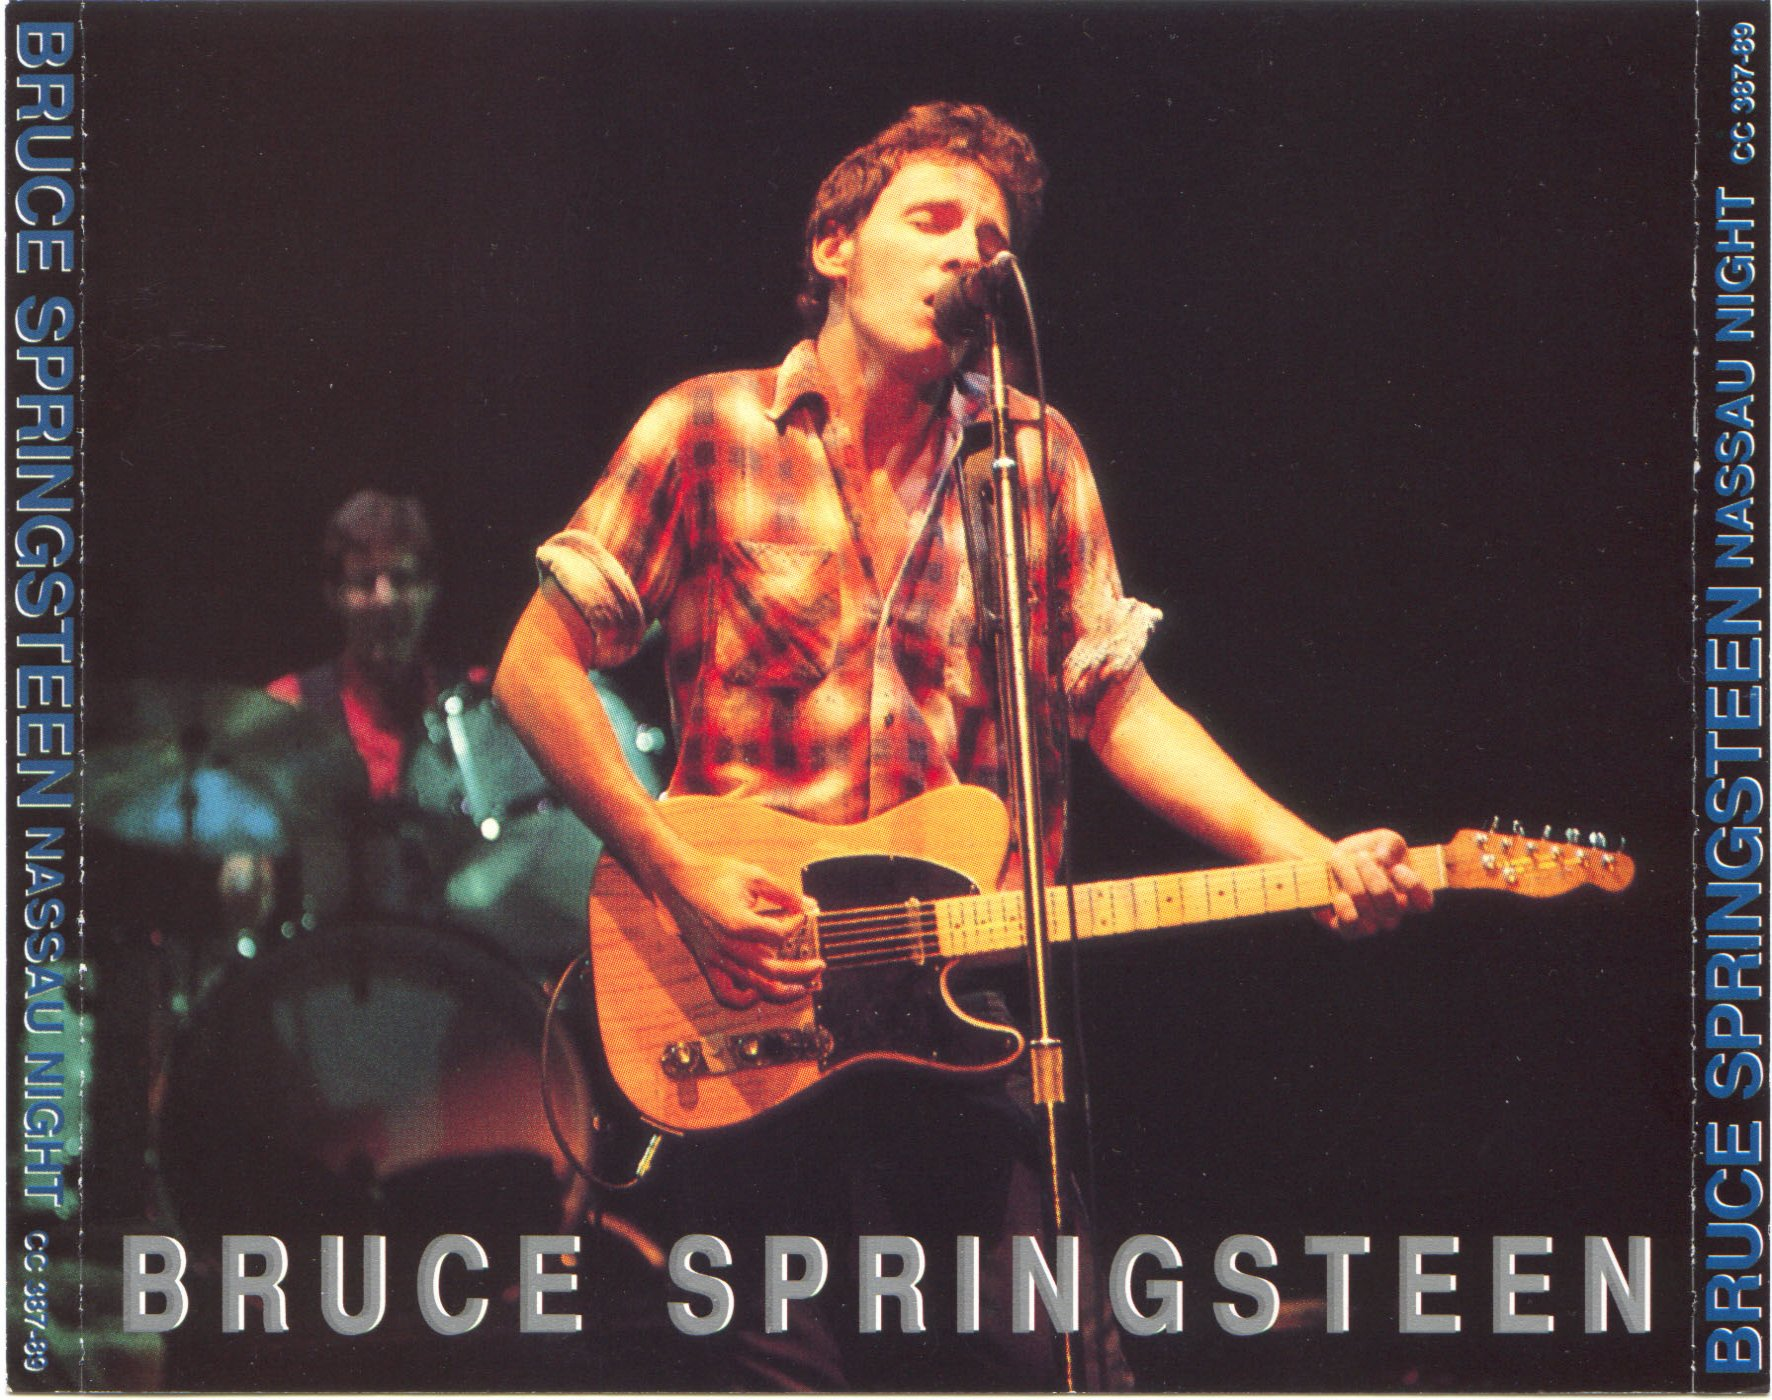 Bruce Springsteen - Nassau Night 31/12/80 - Guitars101 - Guitar Forums